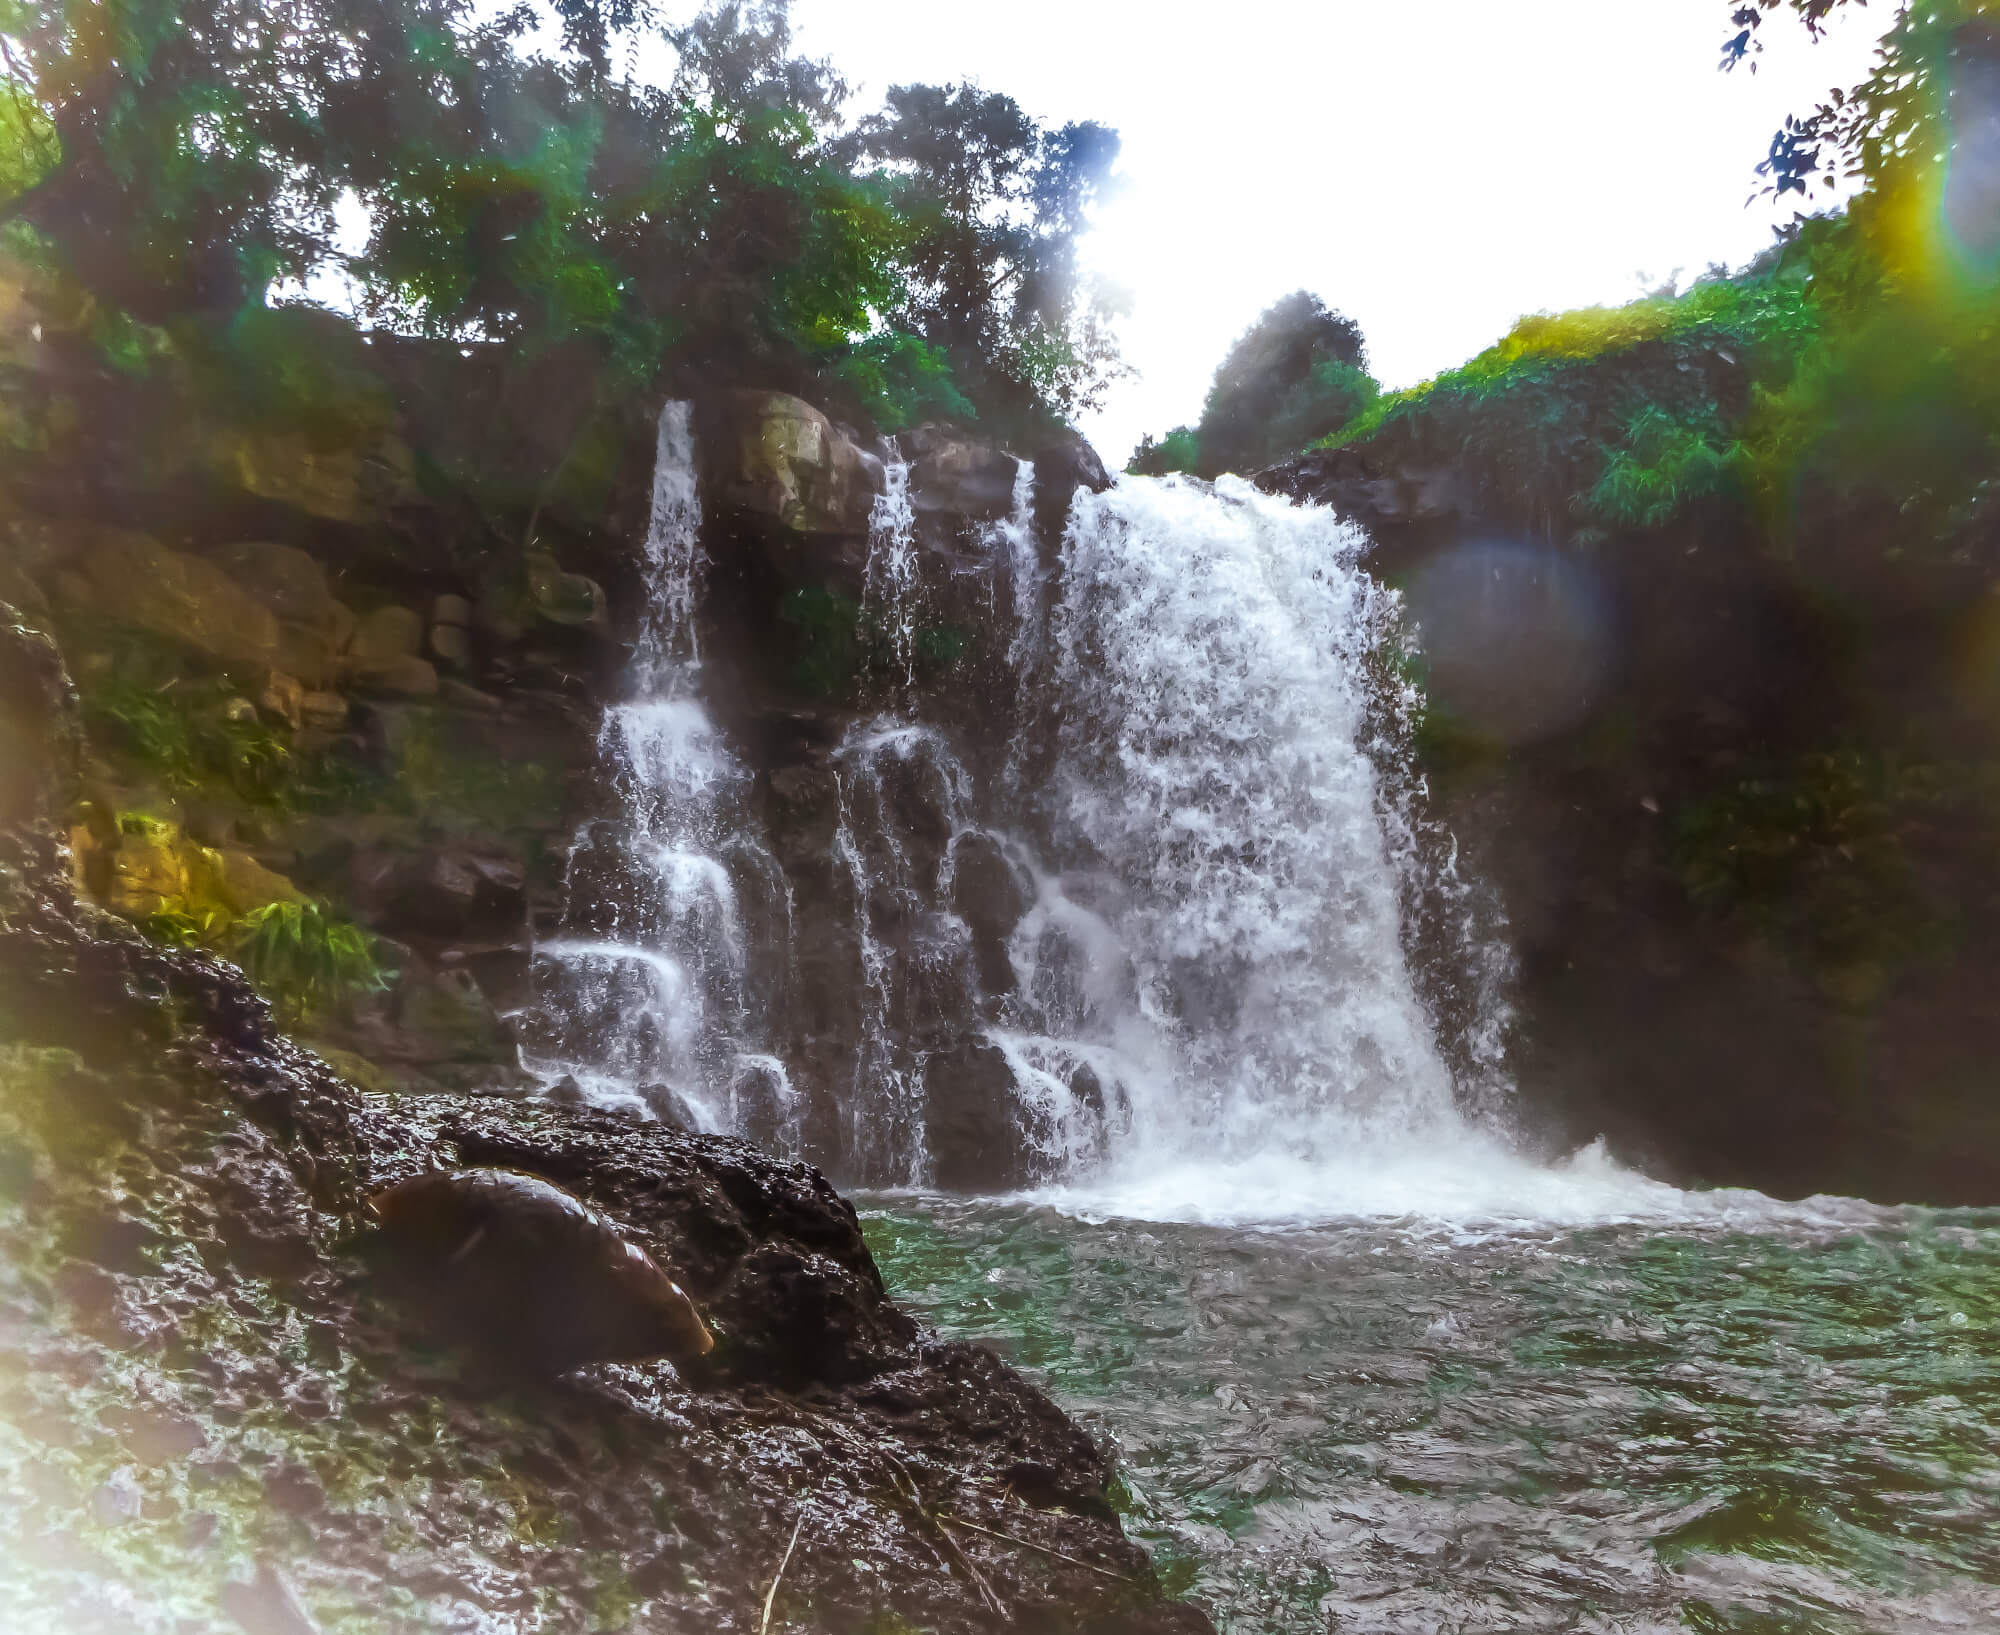 Finding a secret waterfall - a fun thing to do in Mauritius